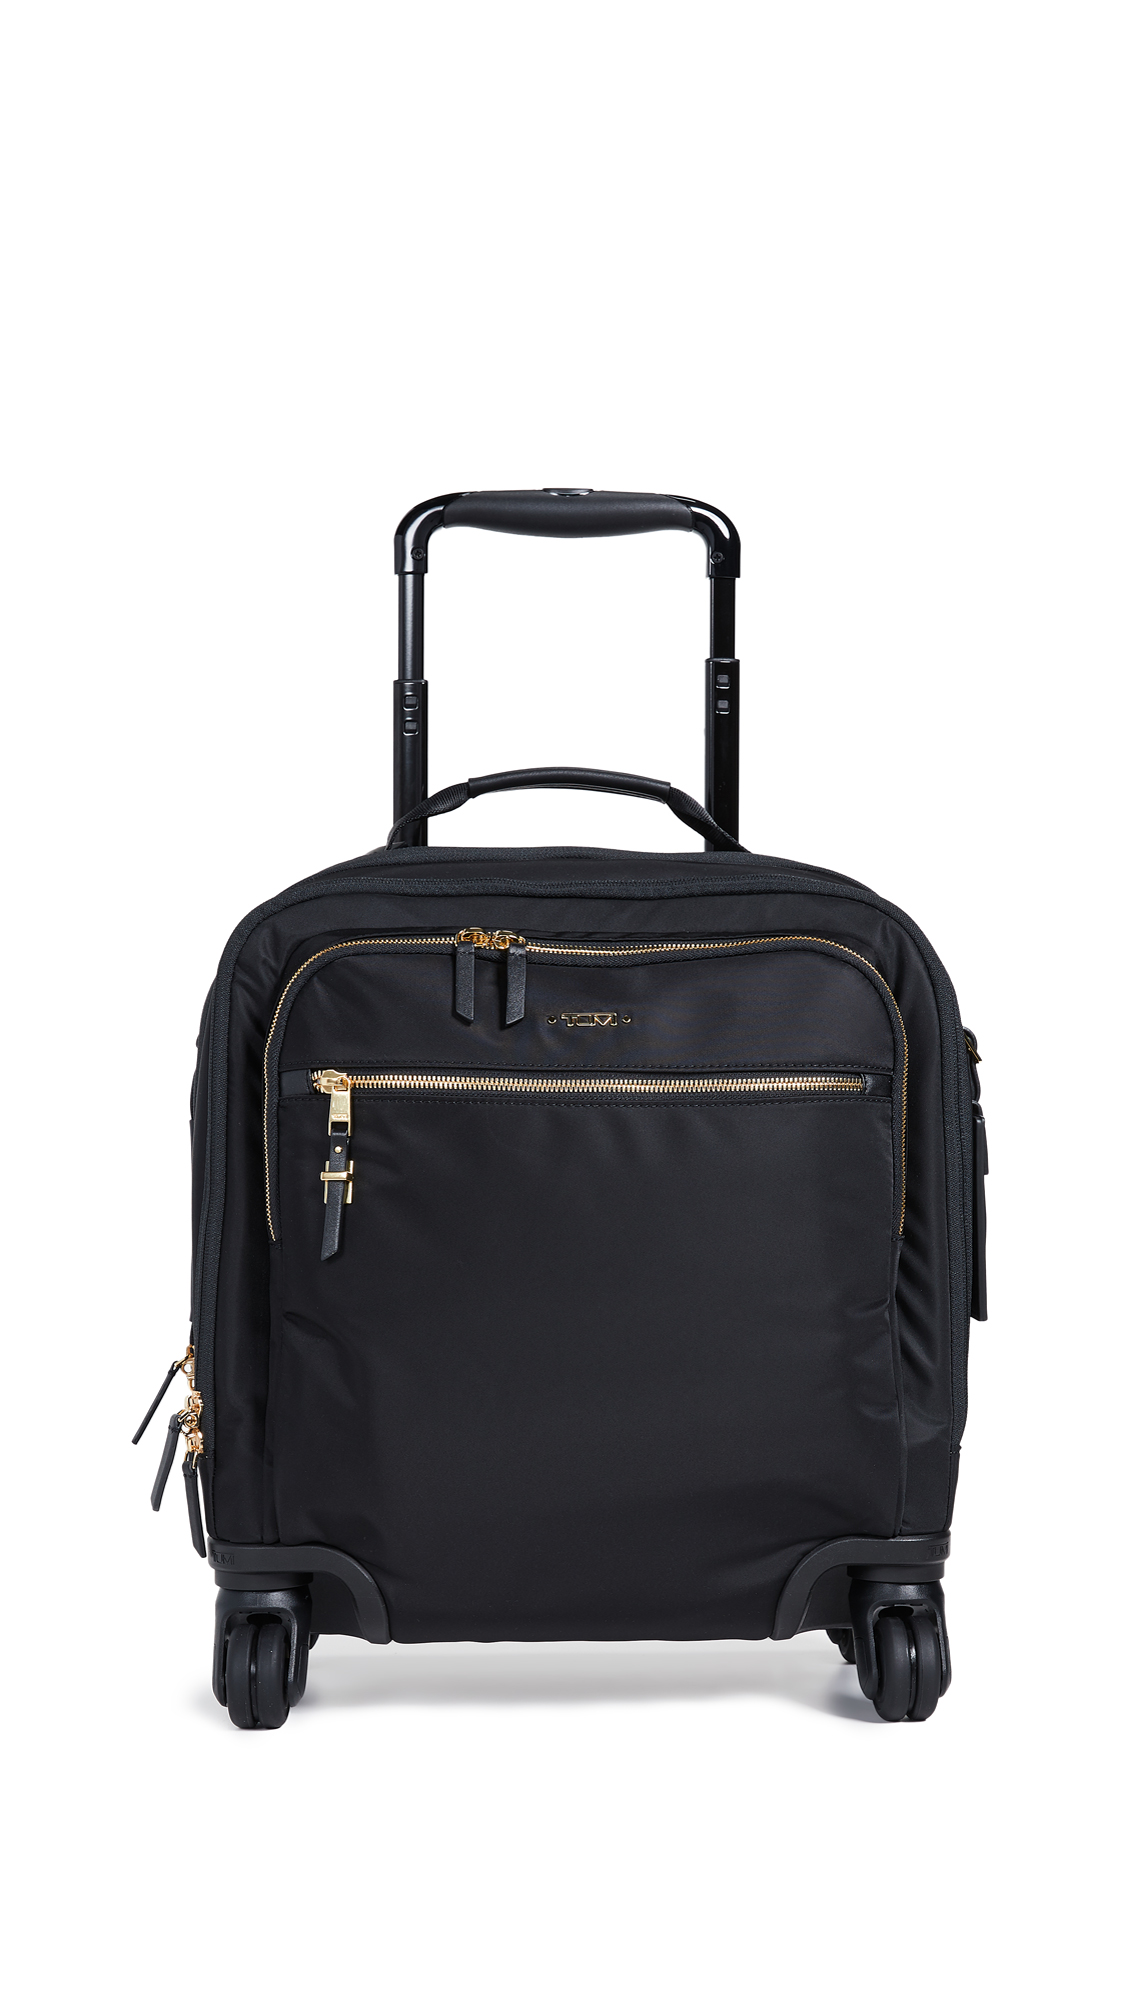 VOYAGEUR OSONA COMPACT CARRY-ON - BLACK